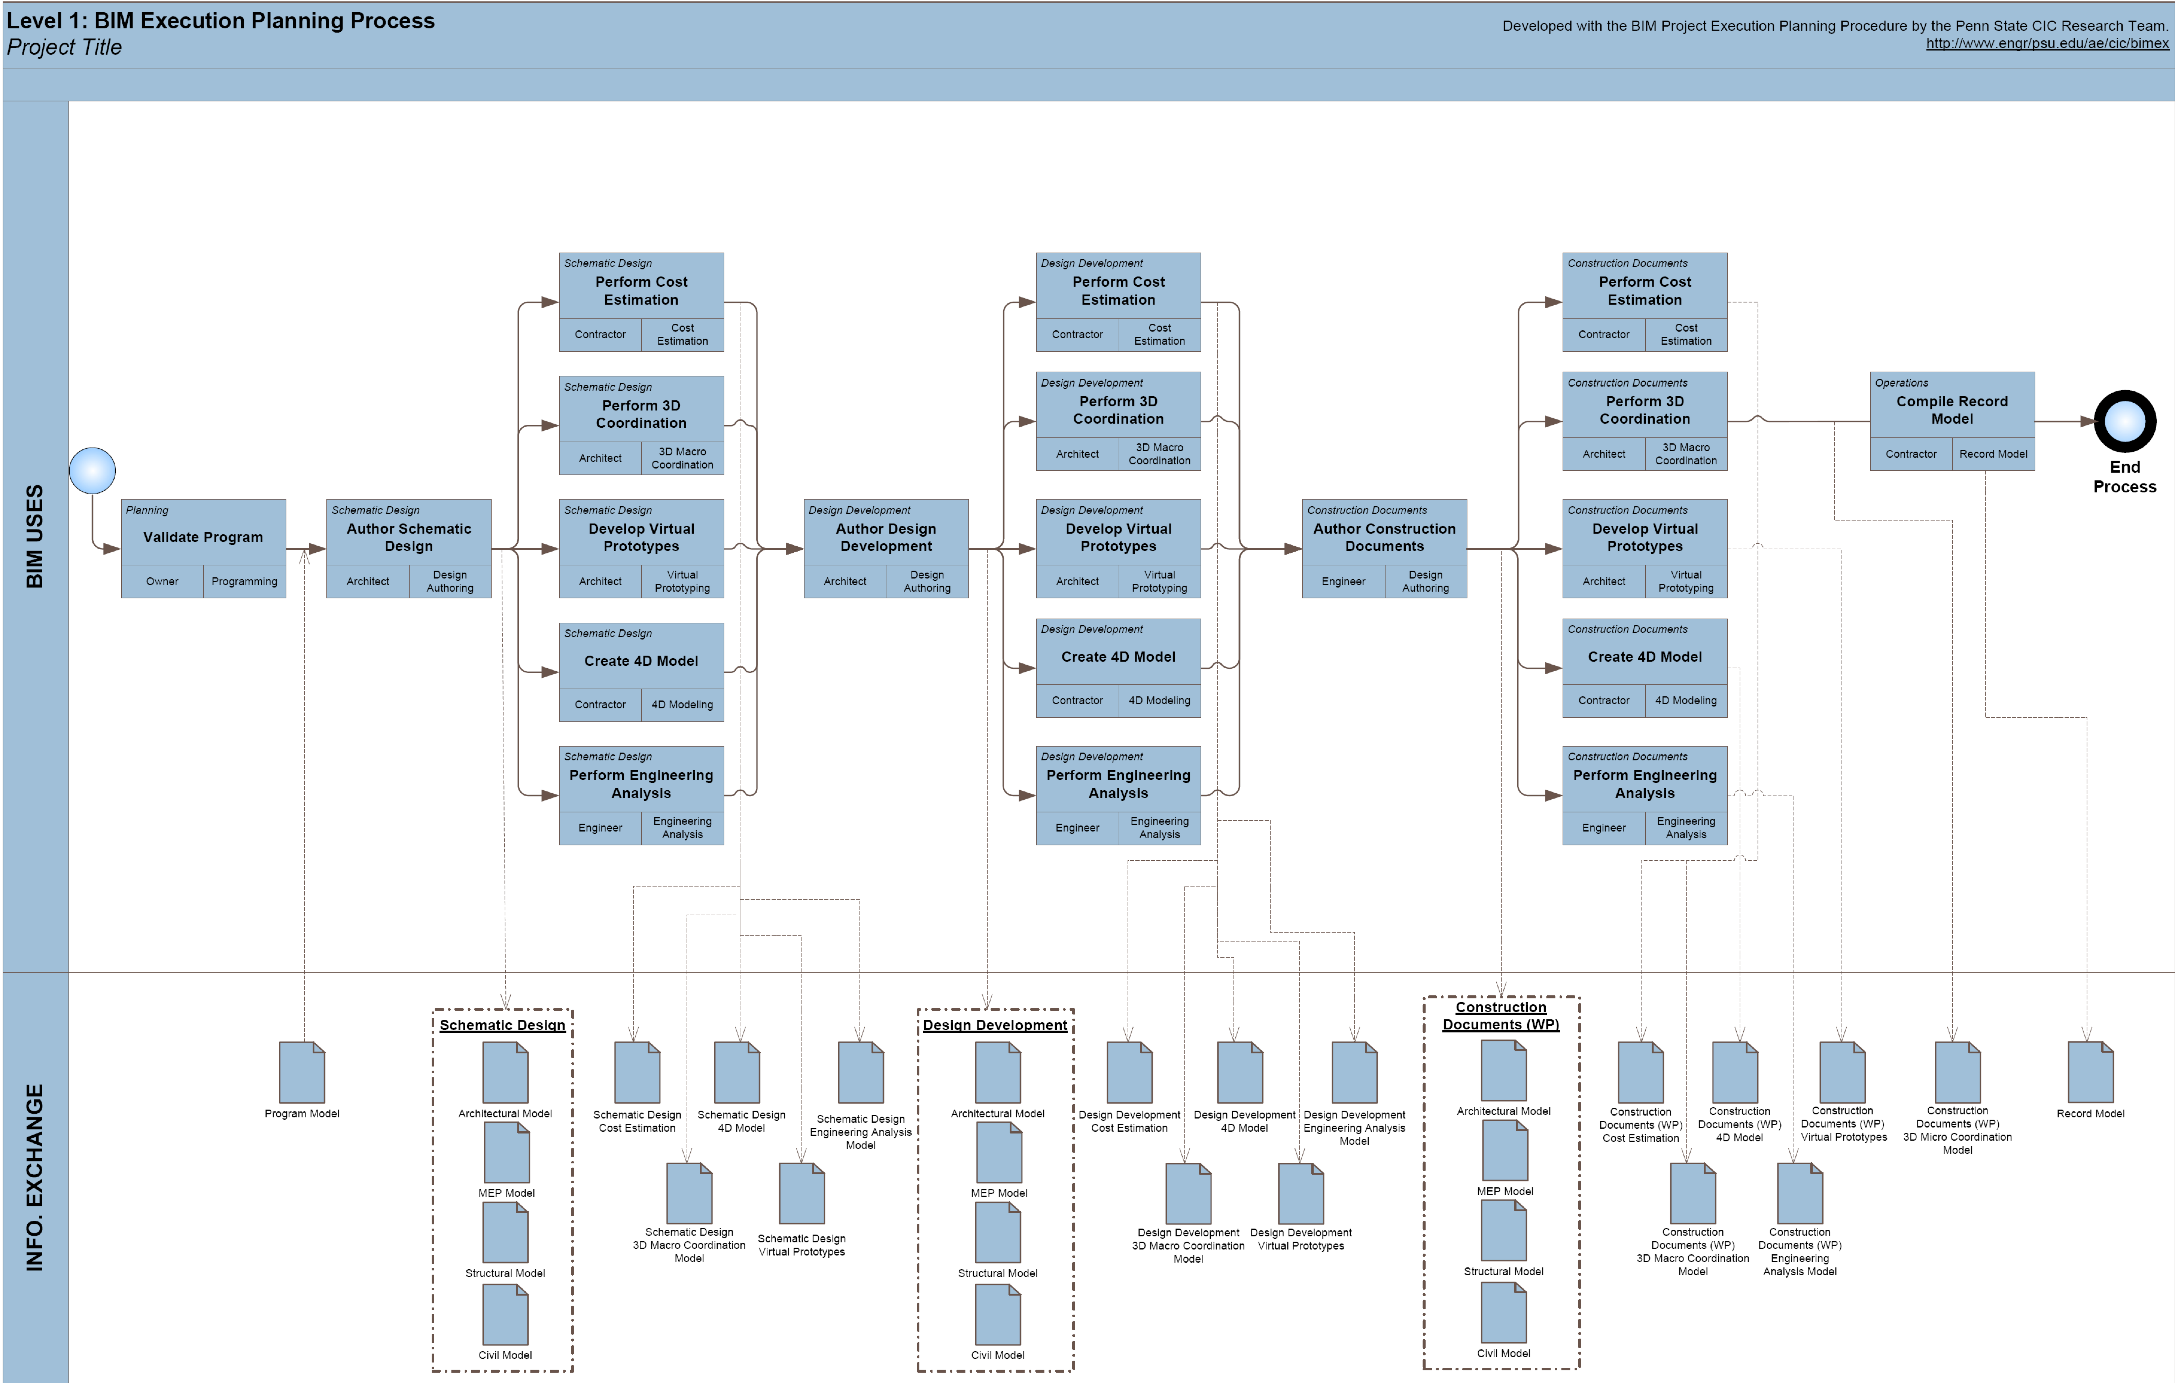 appendix d  process map templates  u2013 bim project execution